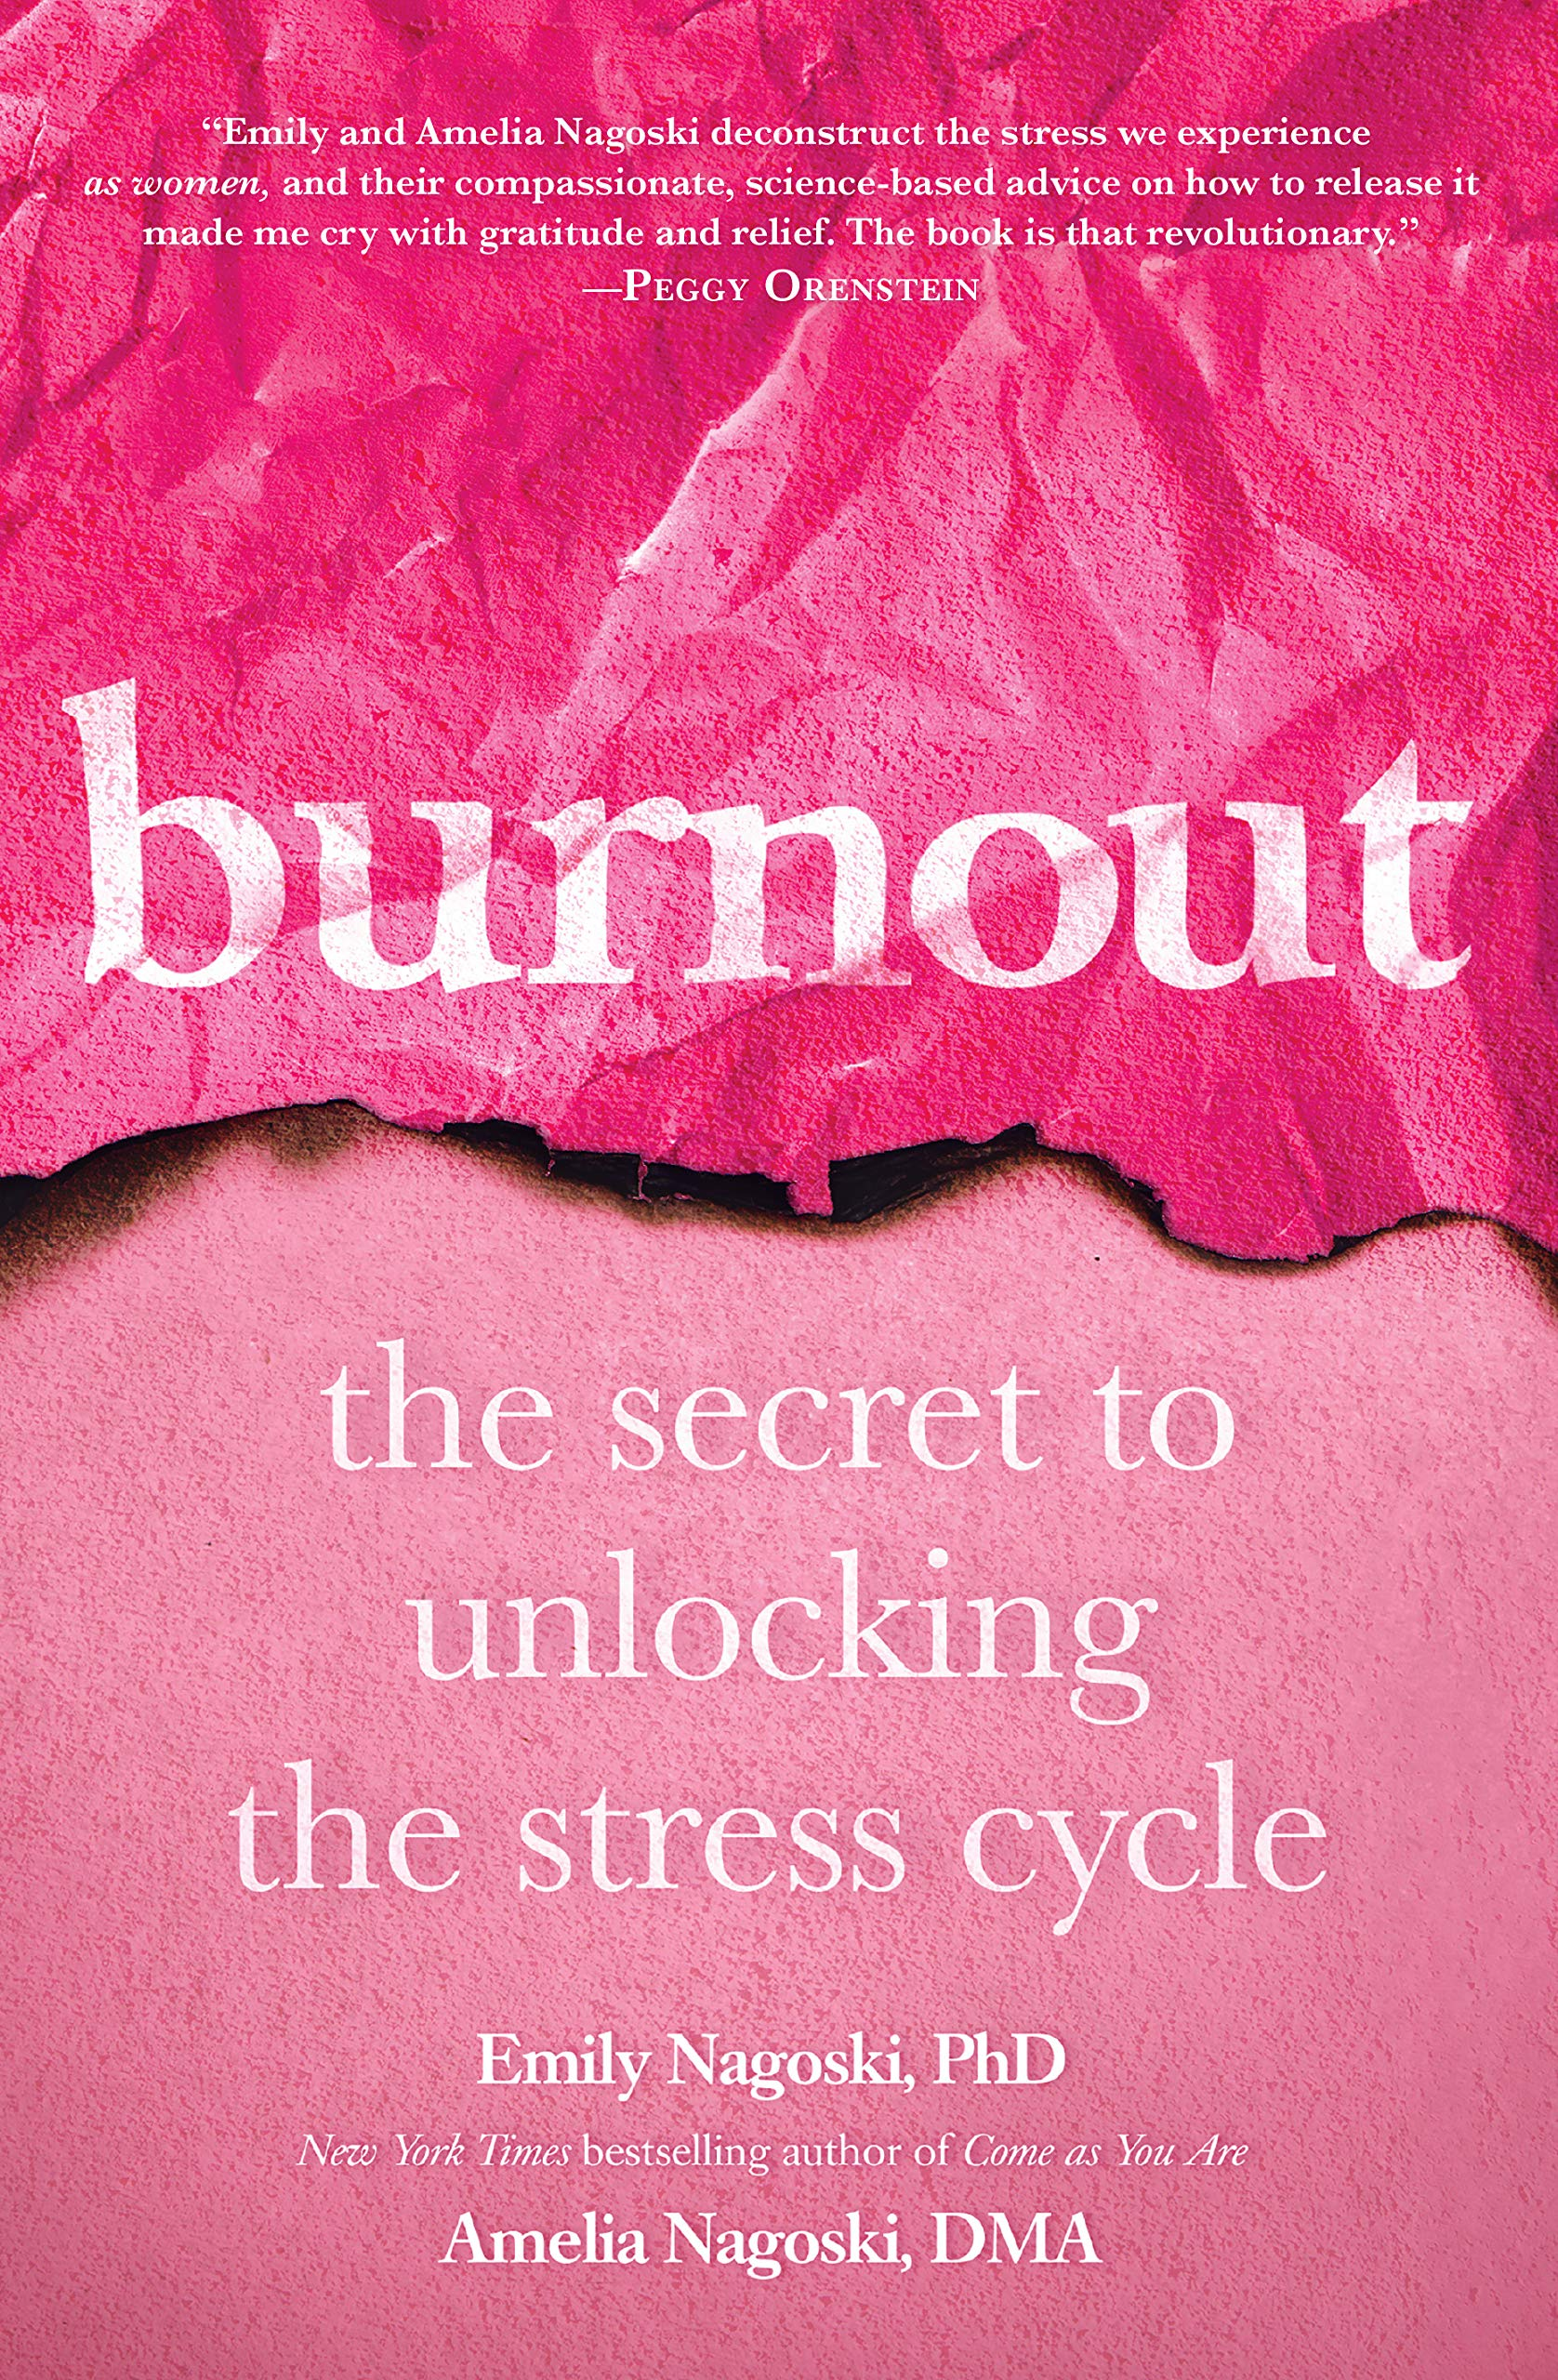 'Burnout: The Secret to Unlocking the Stress Cycle' by Emily Nagoski